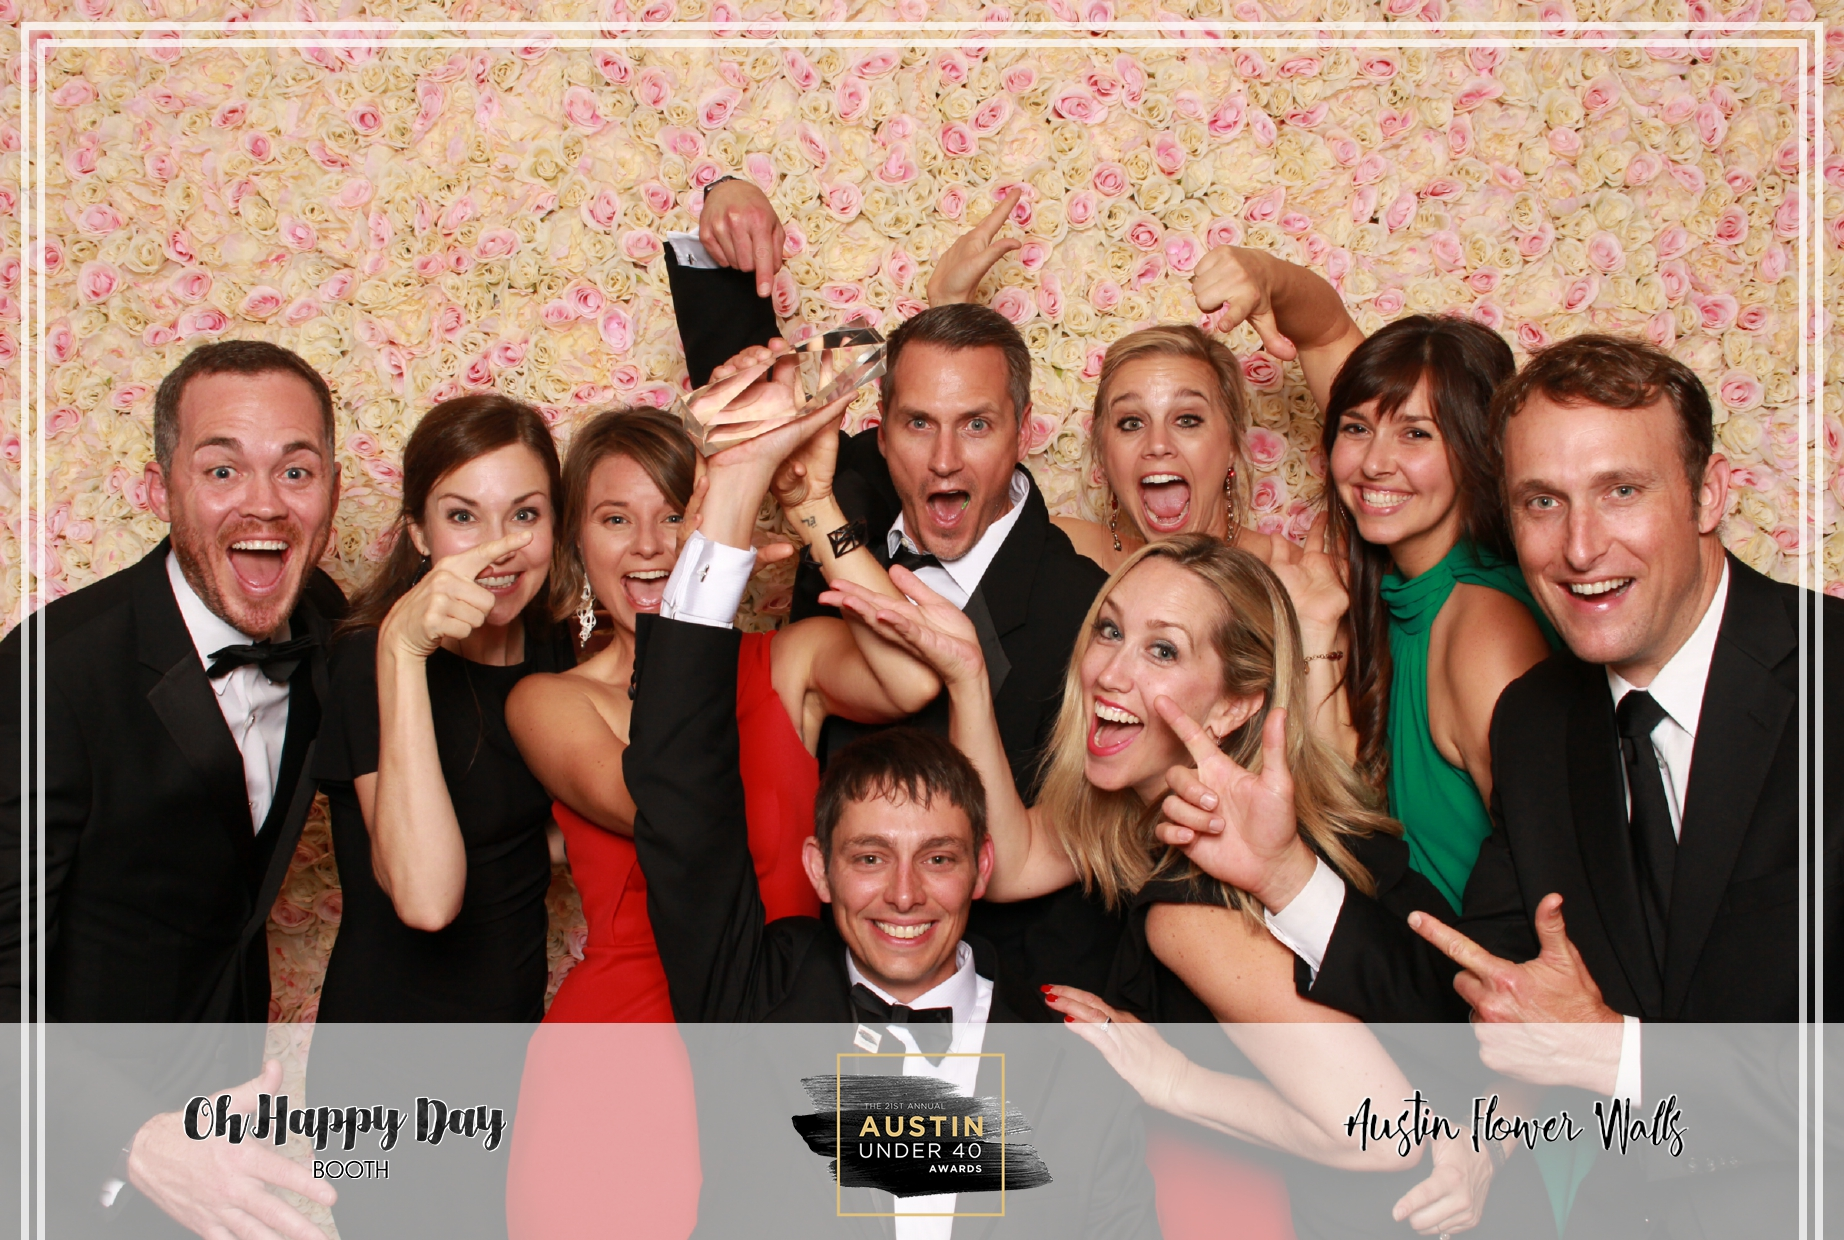 Oh Happy Day Booth - Austin Under 40-217.jpg